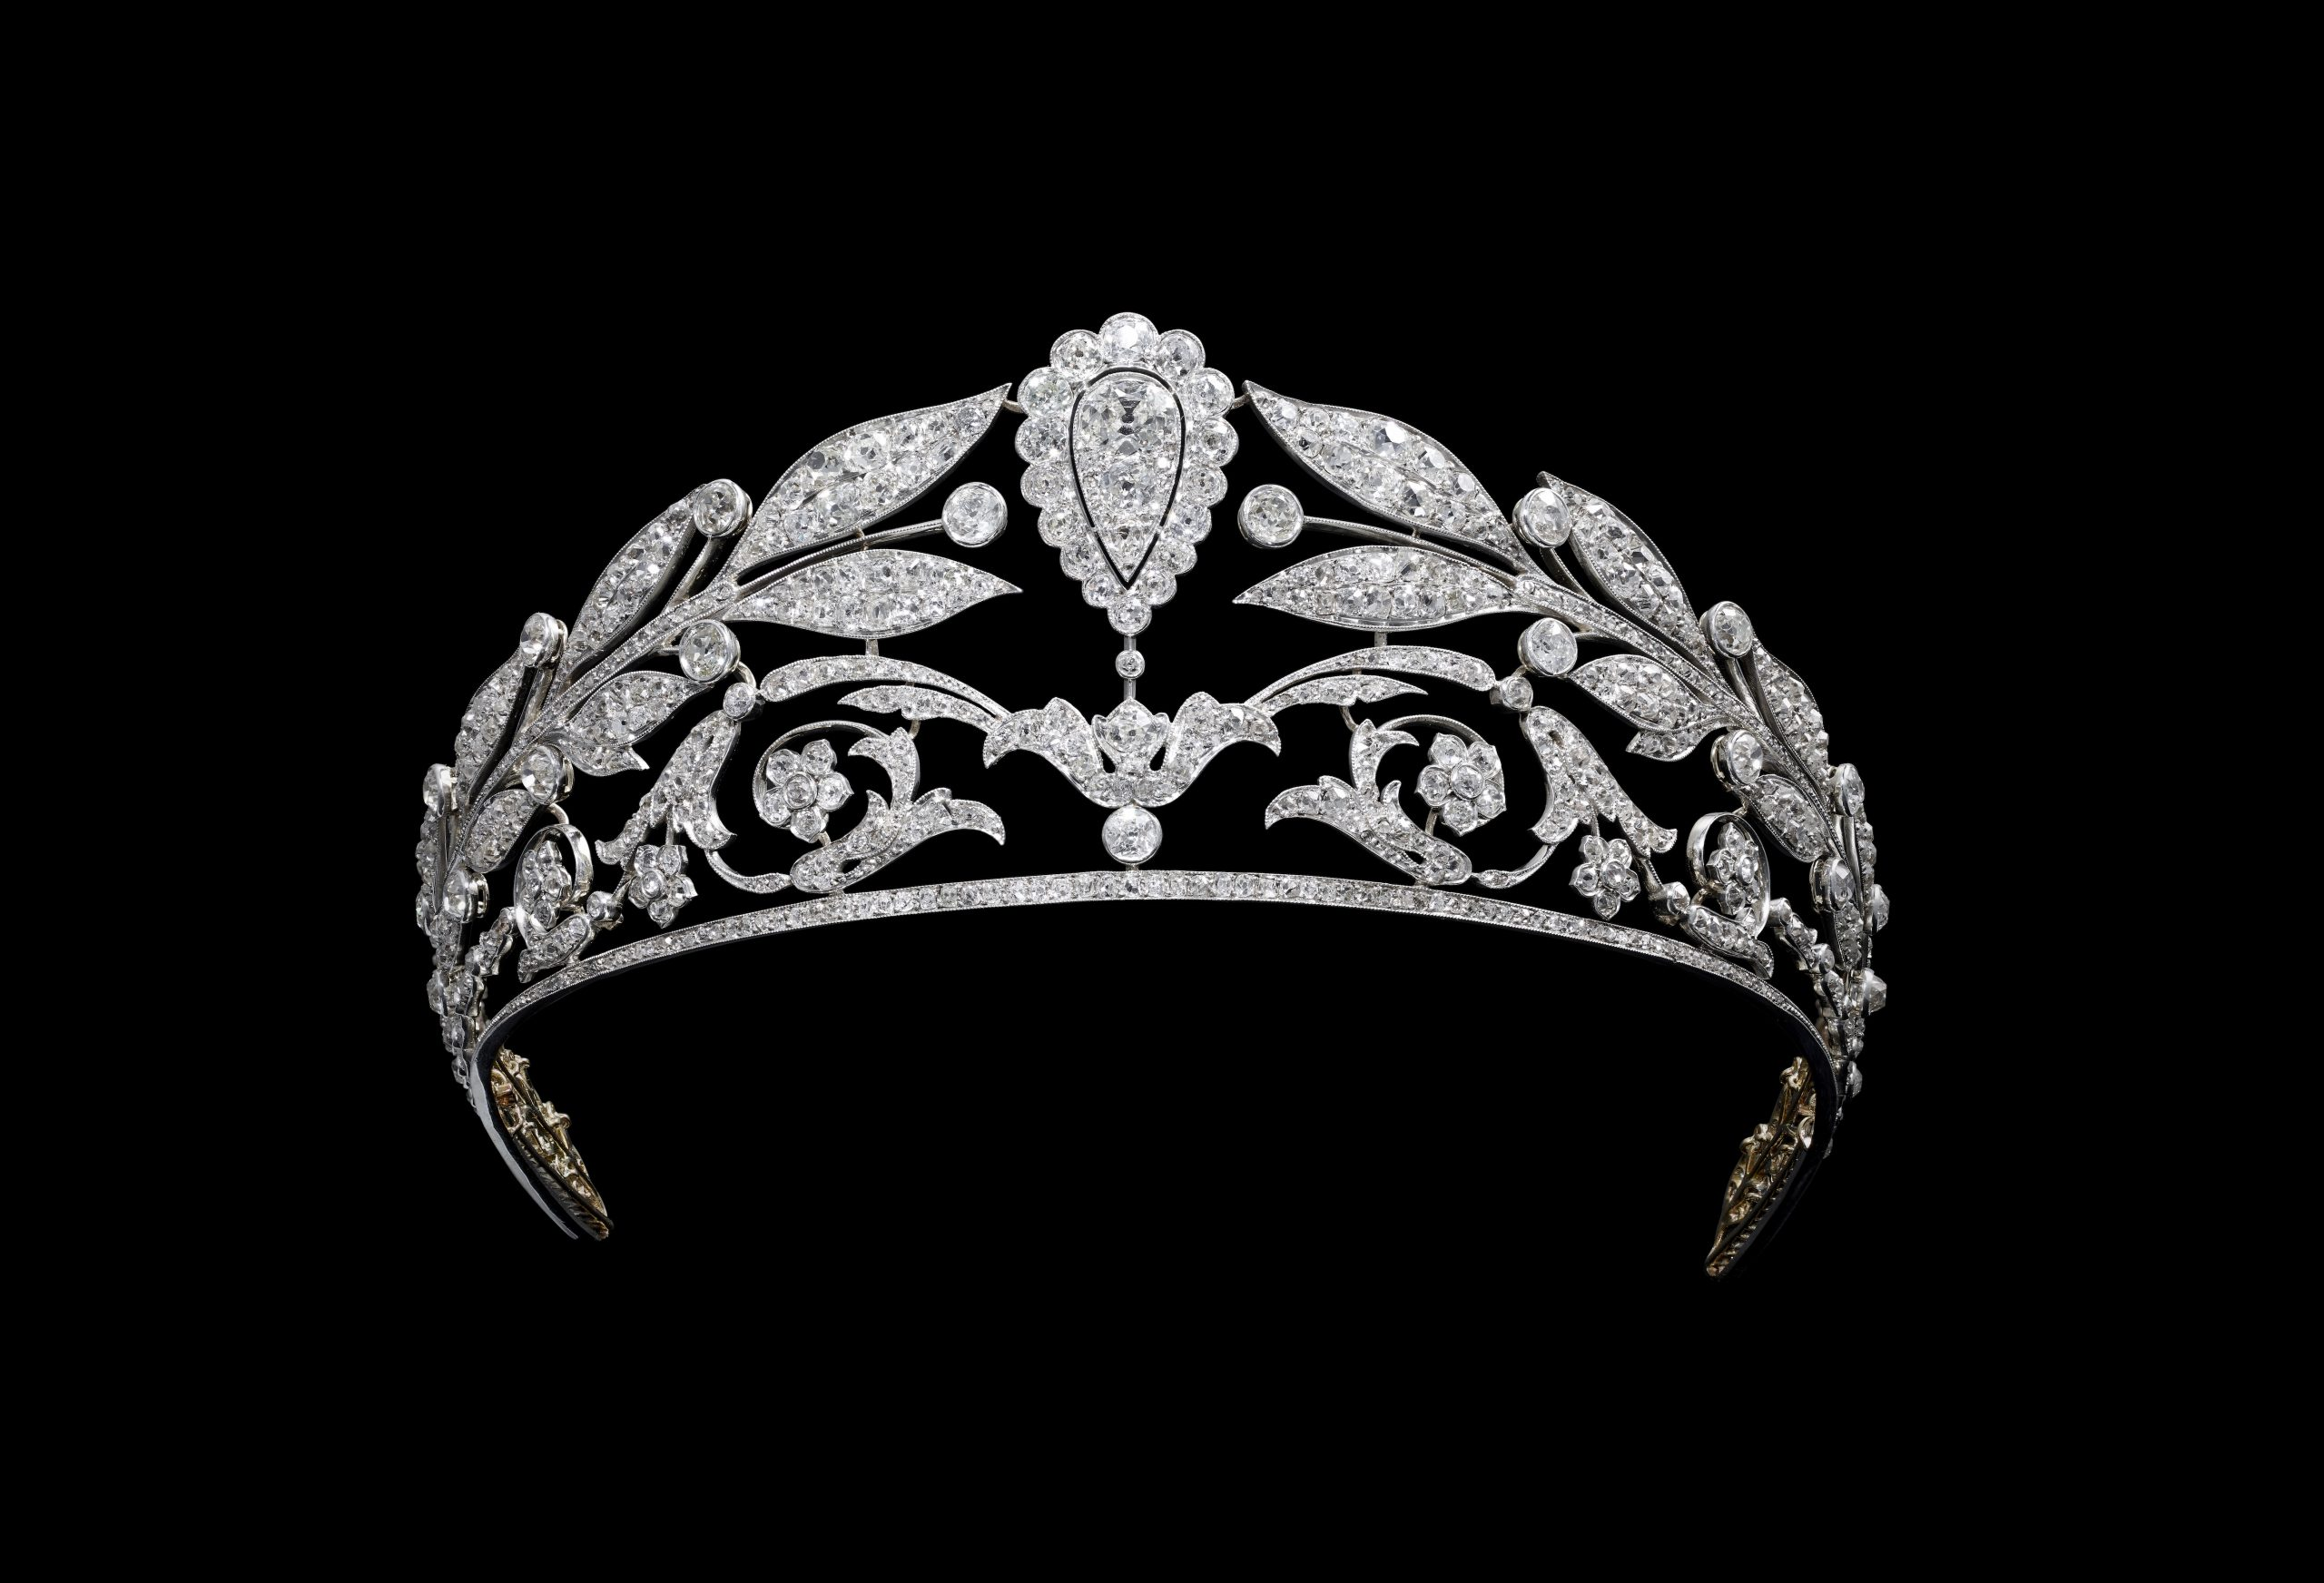 CHAUMET: JEWELRY FIT FOR A QUEEN